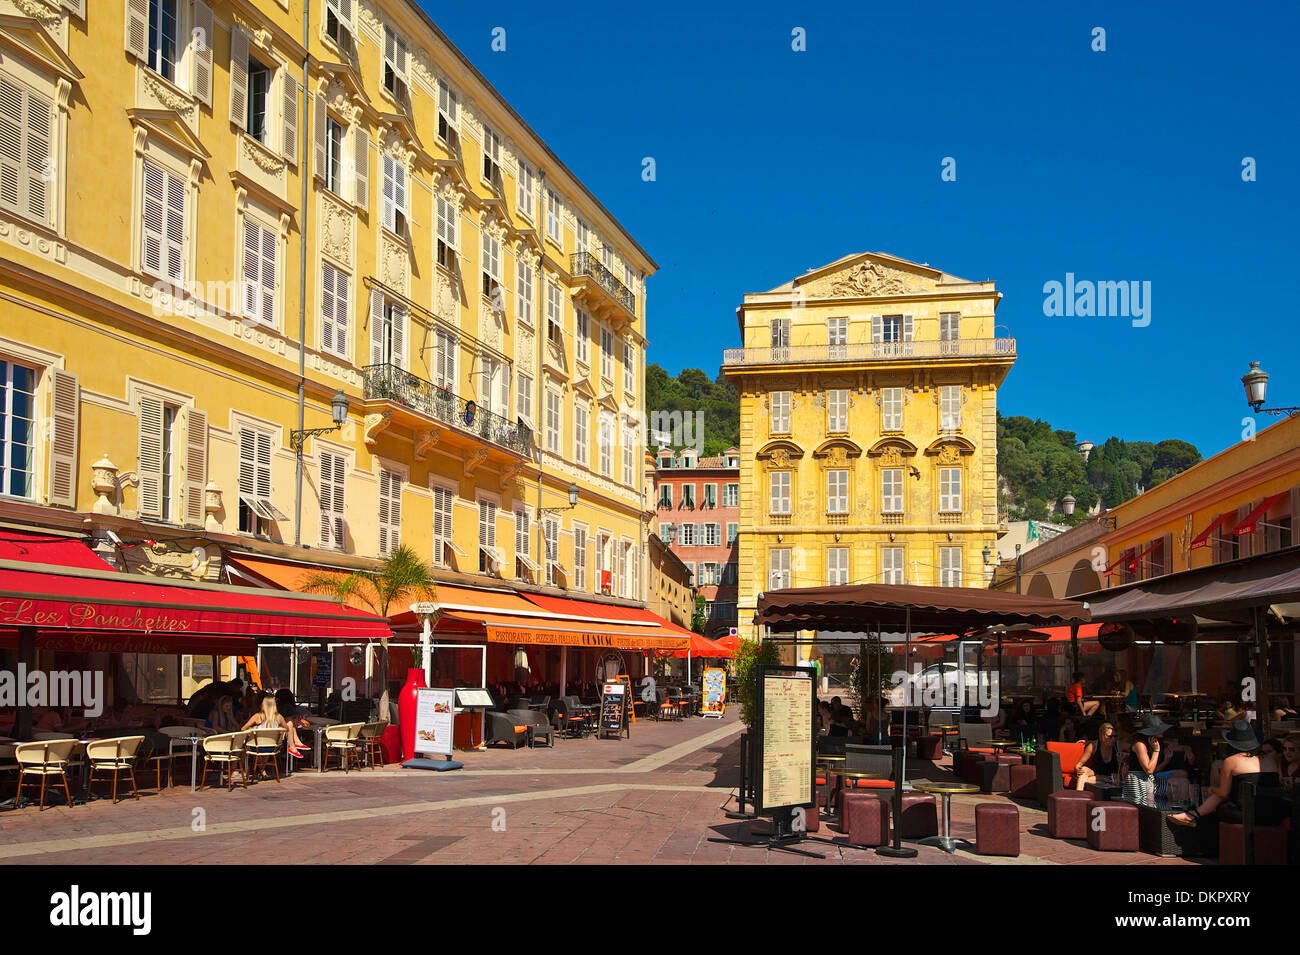 France Europe South of France Cote d'Azur Place Charles Stra à yen cafes street cafes cafes coffee houses cafe house Stock Photo